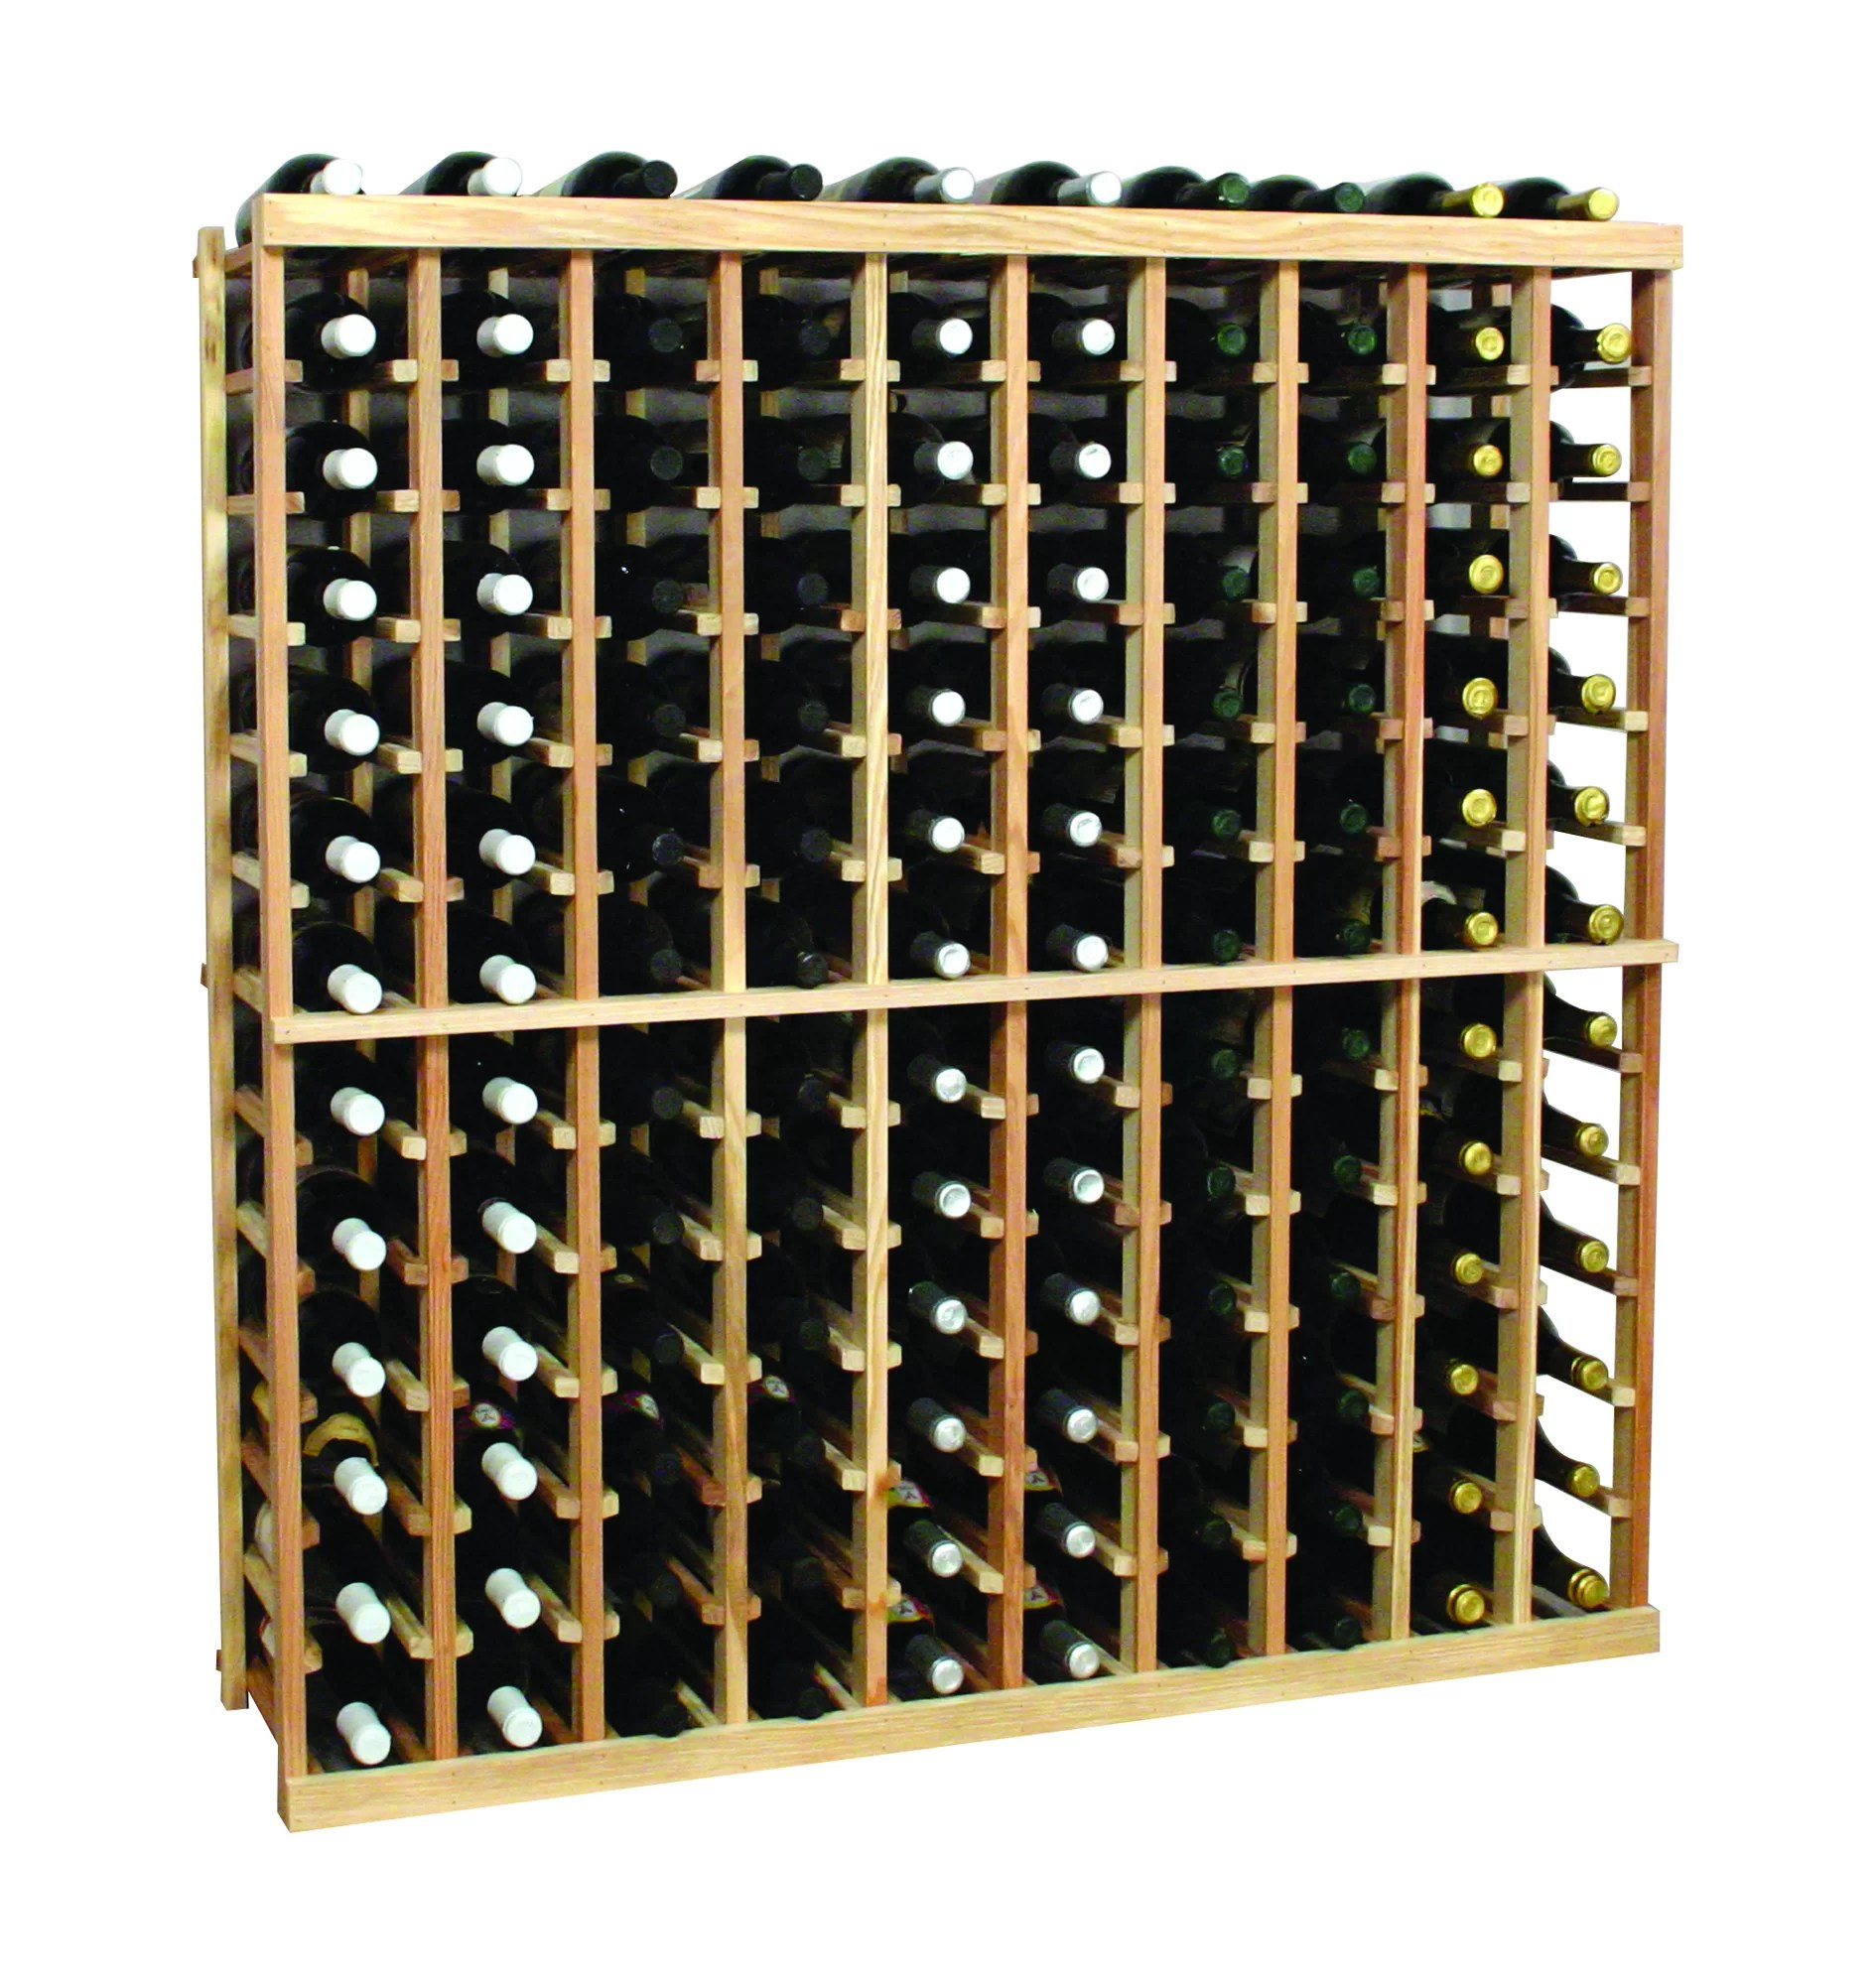 In Floor Wine Storage Wine Cellar Innovations Vintner Series 130 Bottle Floor